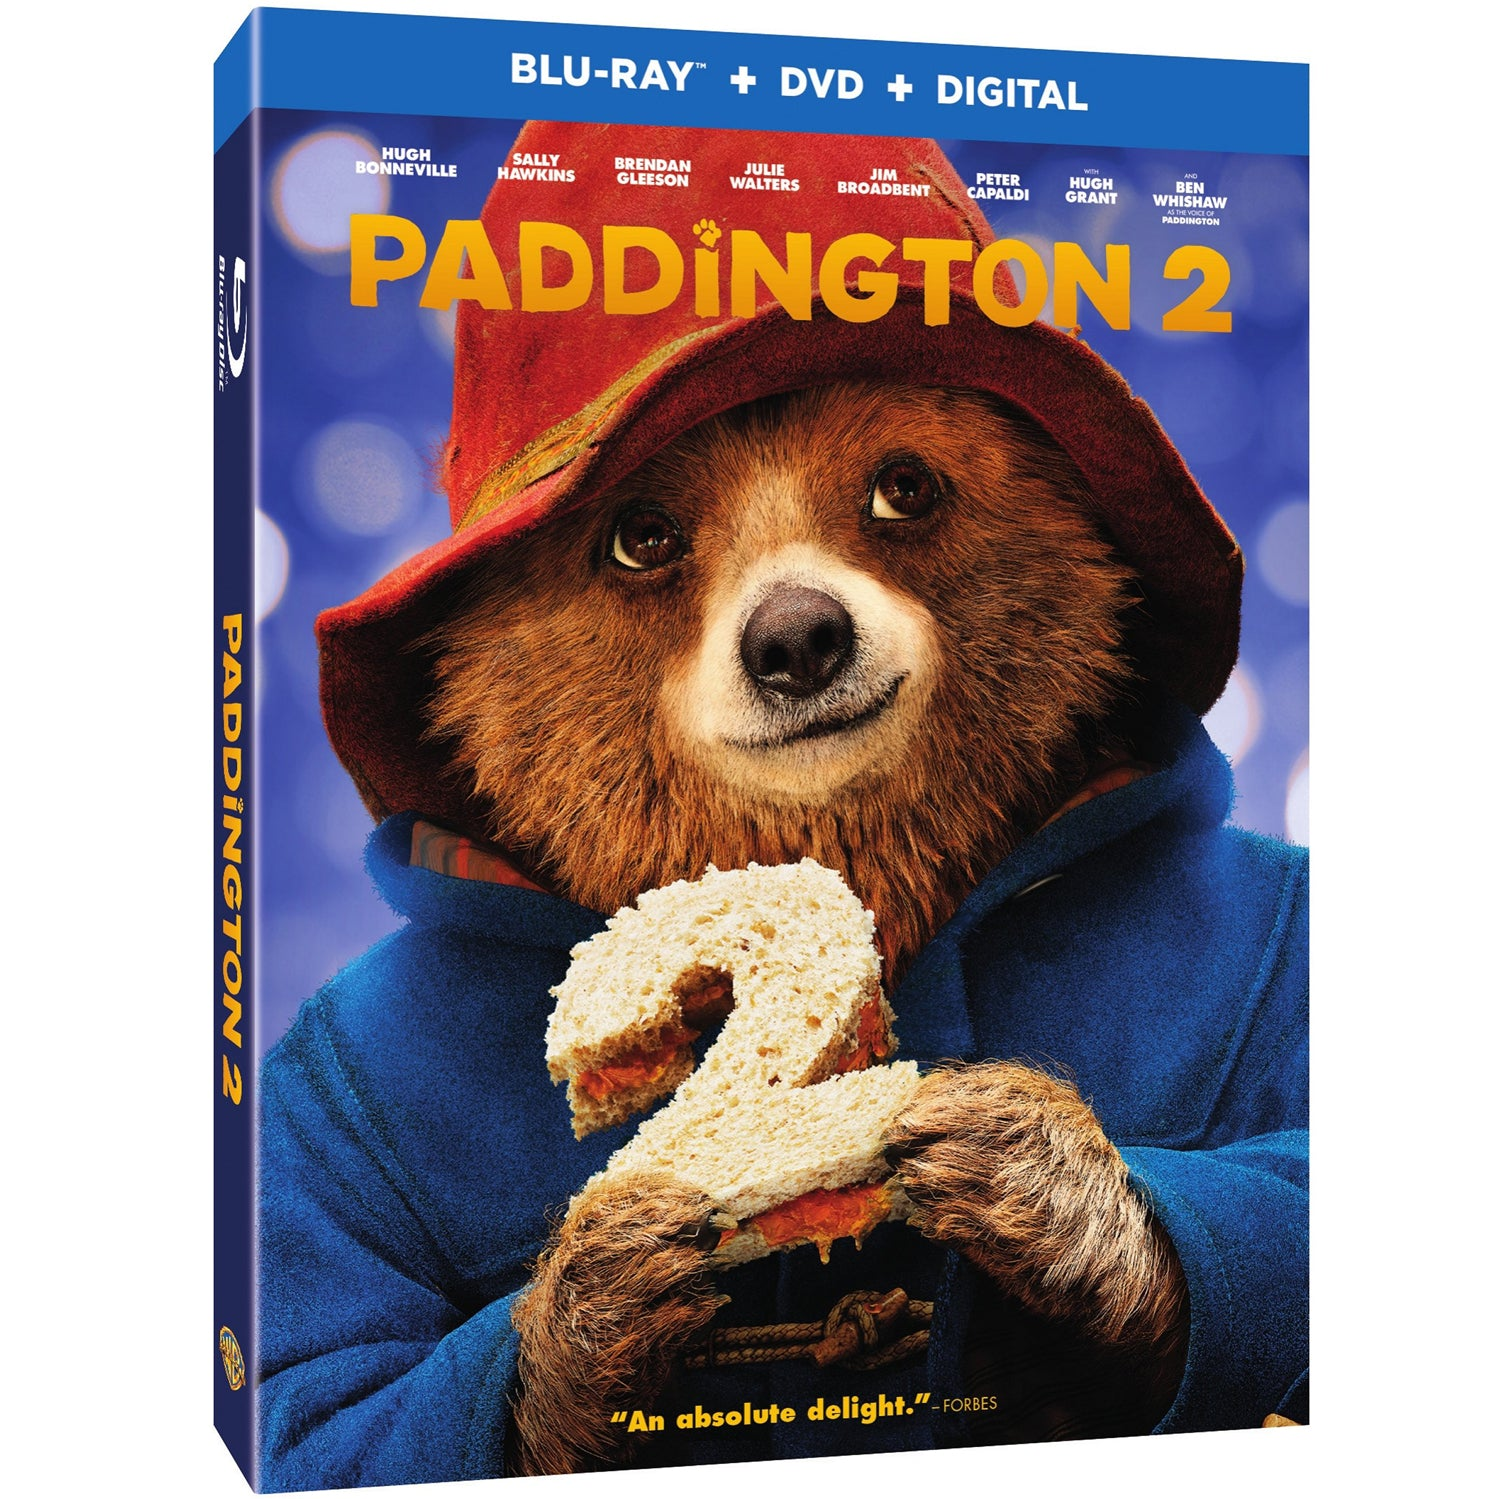 Paddington 2 (Blu-ray Combo Pack)